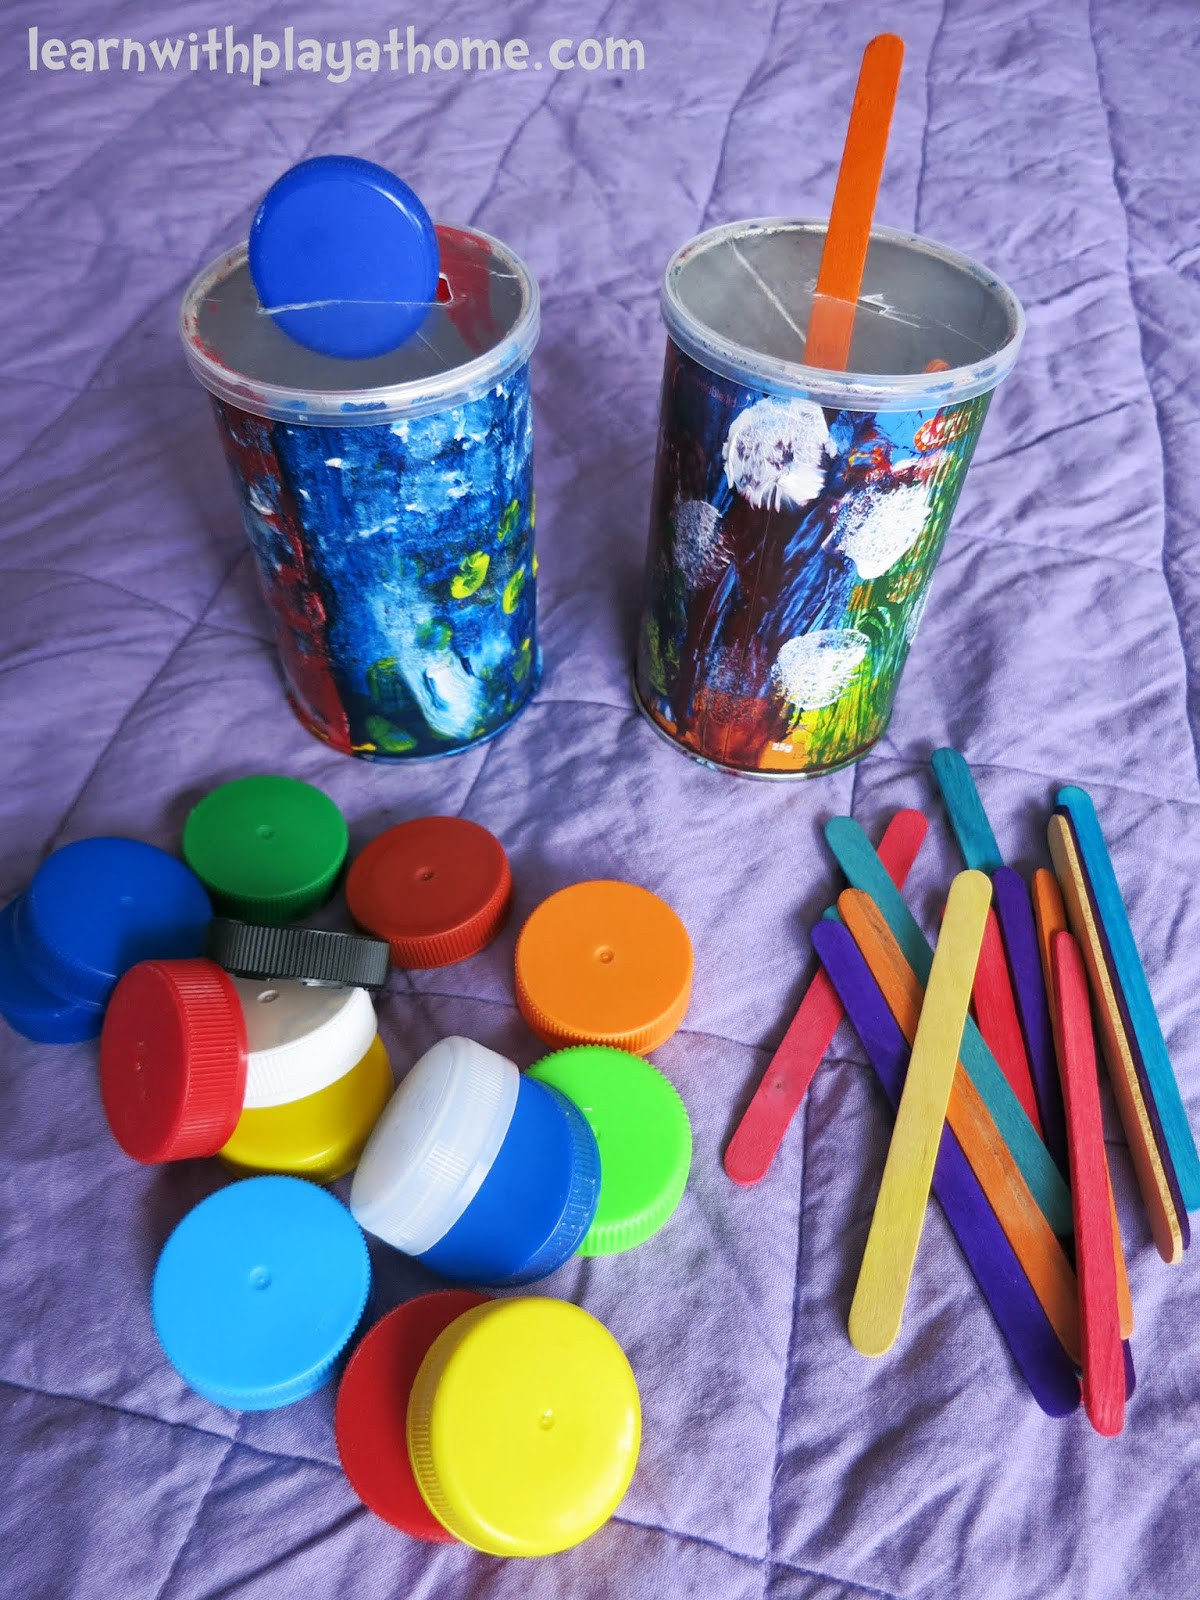 Best ideas about DIY Toddler Activities . Save or Pin Learn with Play at Home DIY Fine Motor Activity for Now.